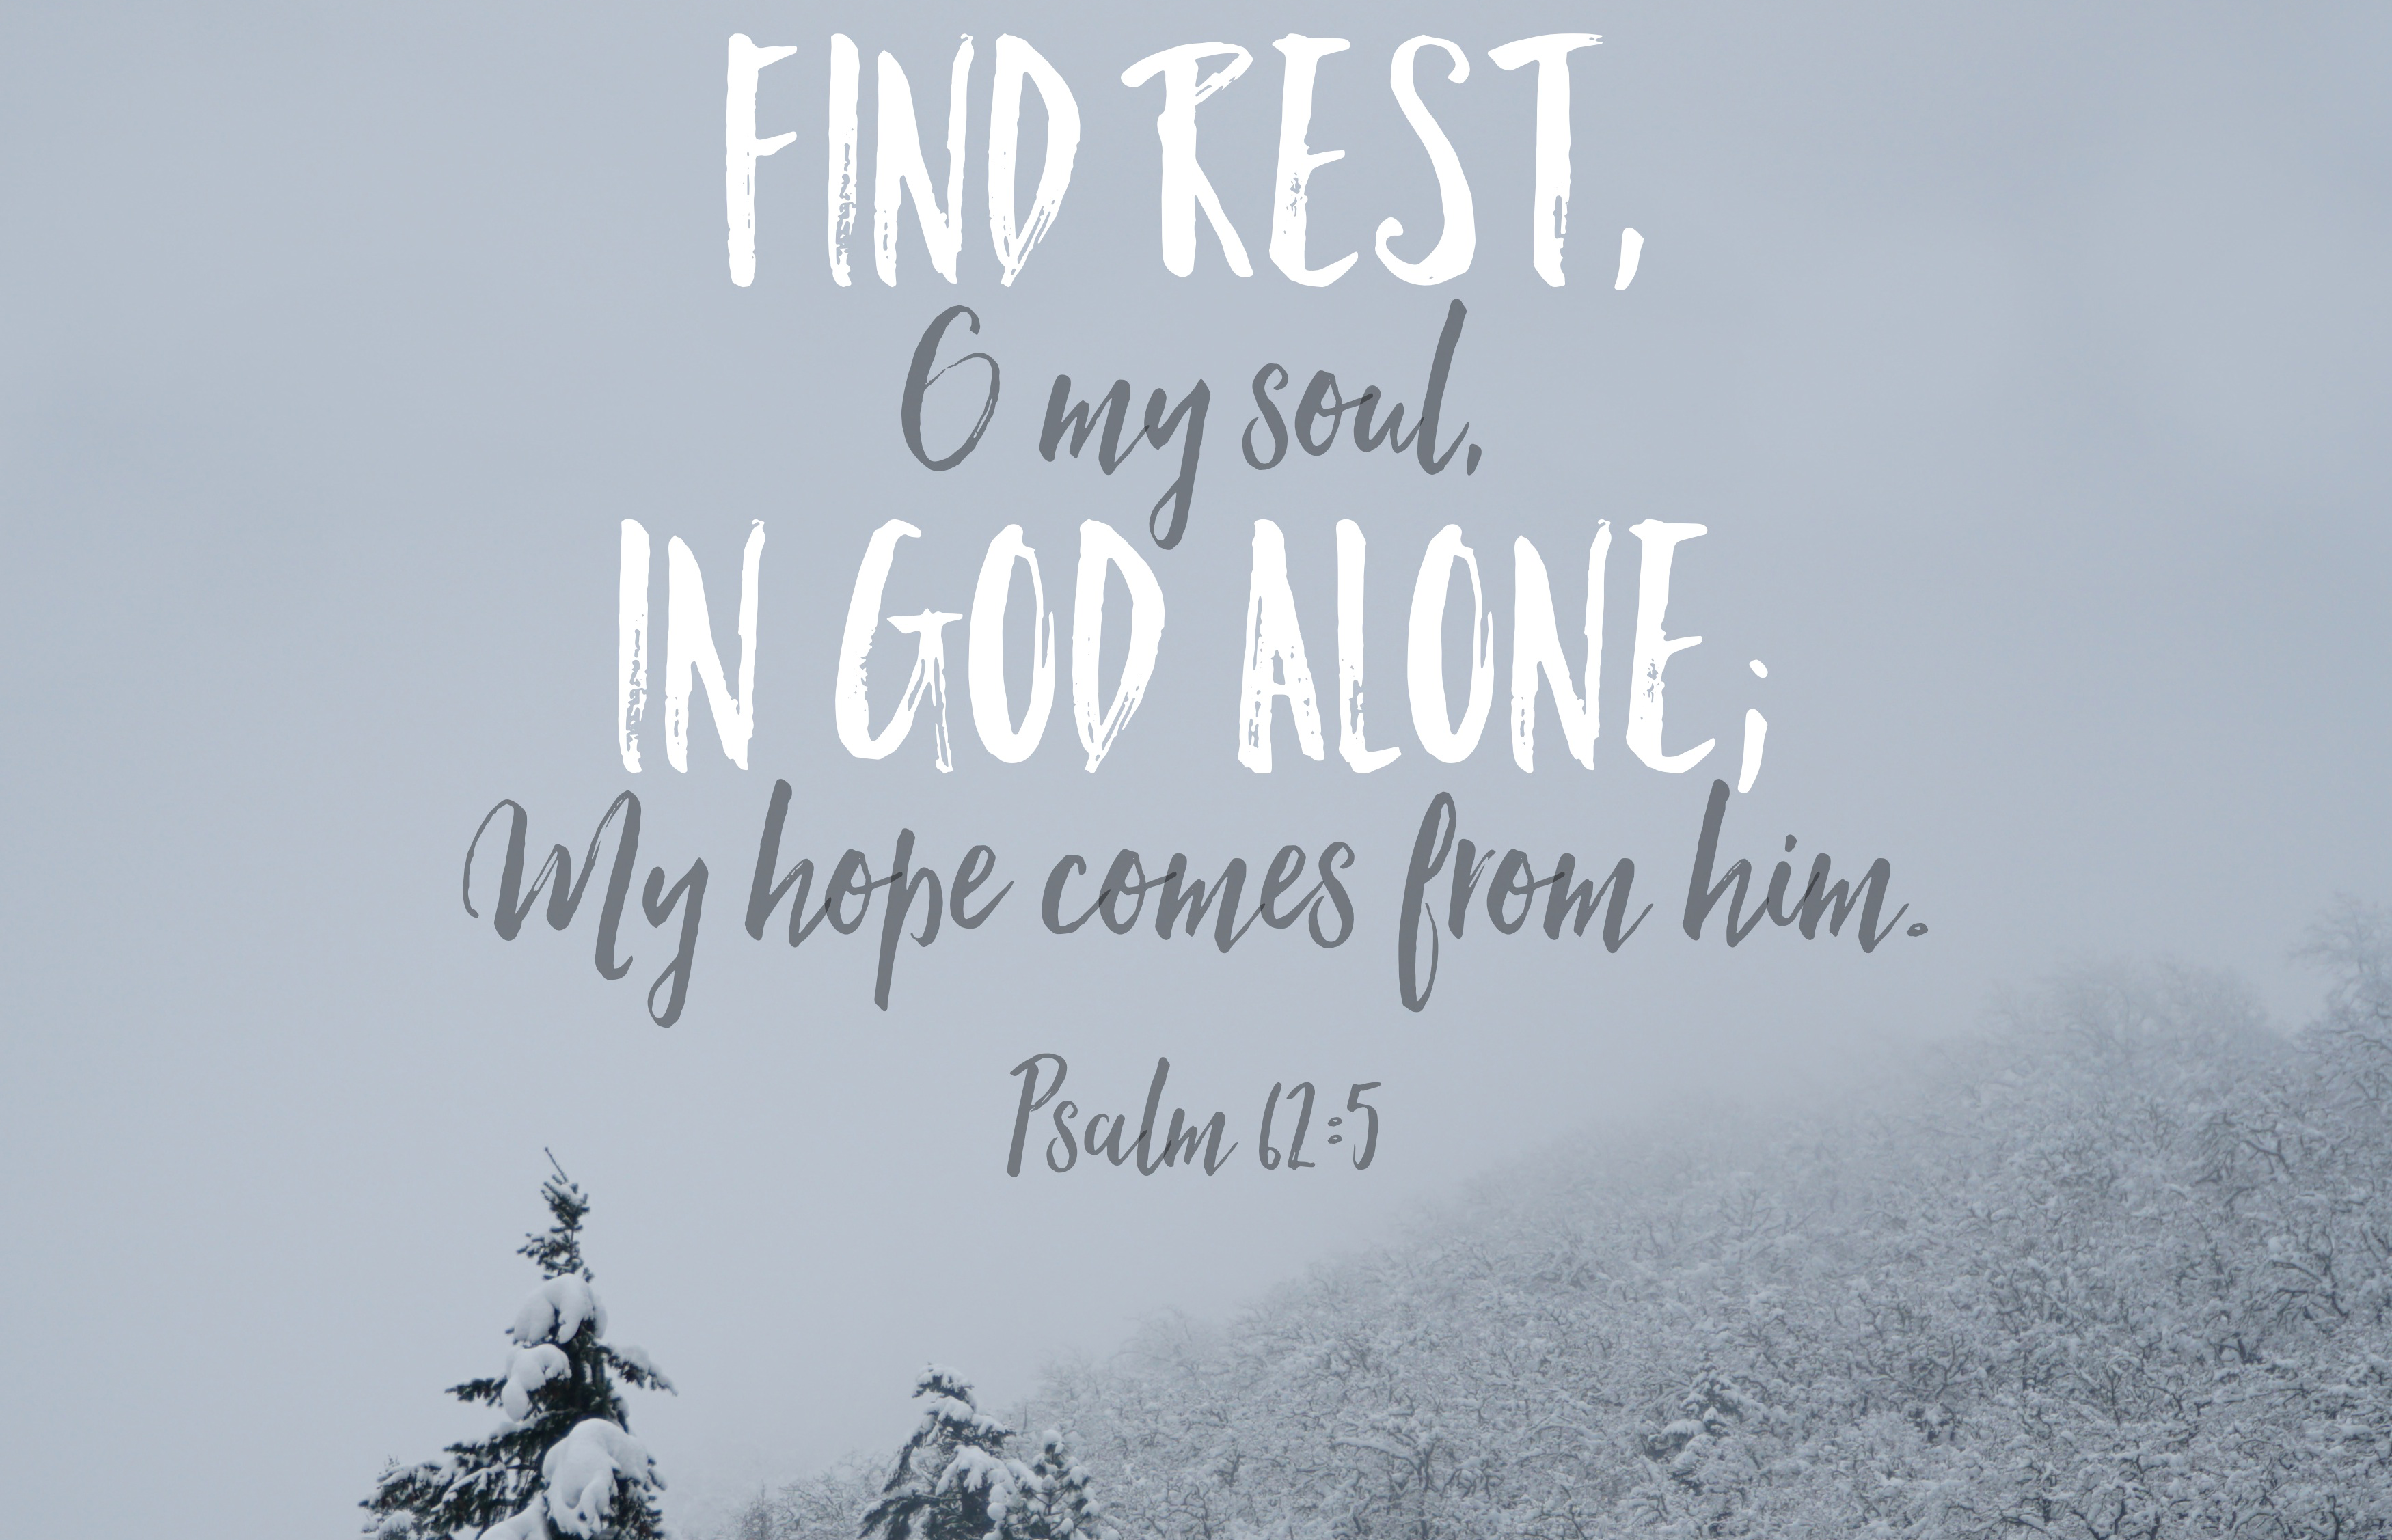 psalm-62-5-quote